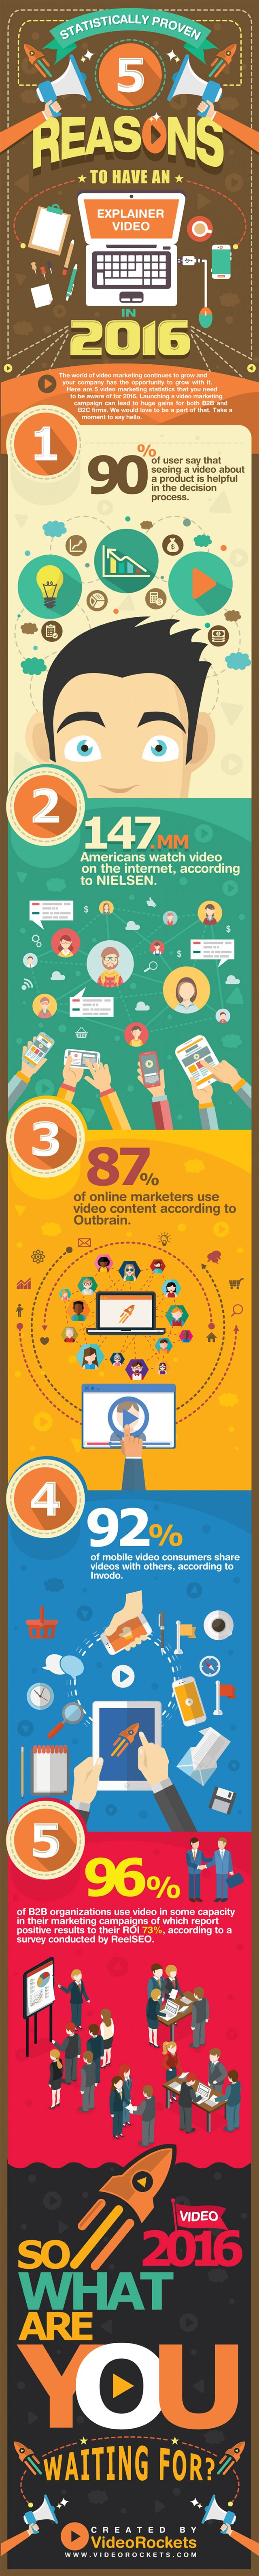 5 Reasons to Have an Explainer Video on Your Website in 2016 #Infographic